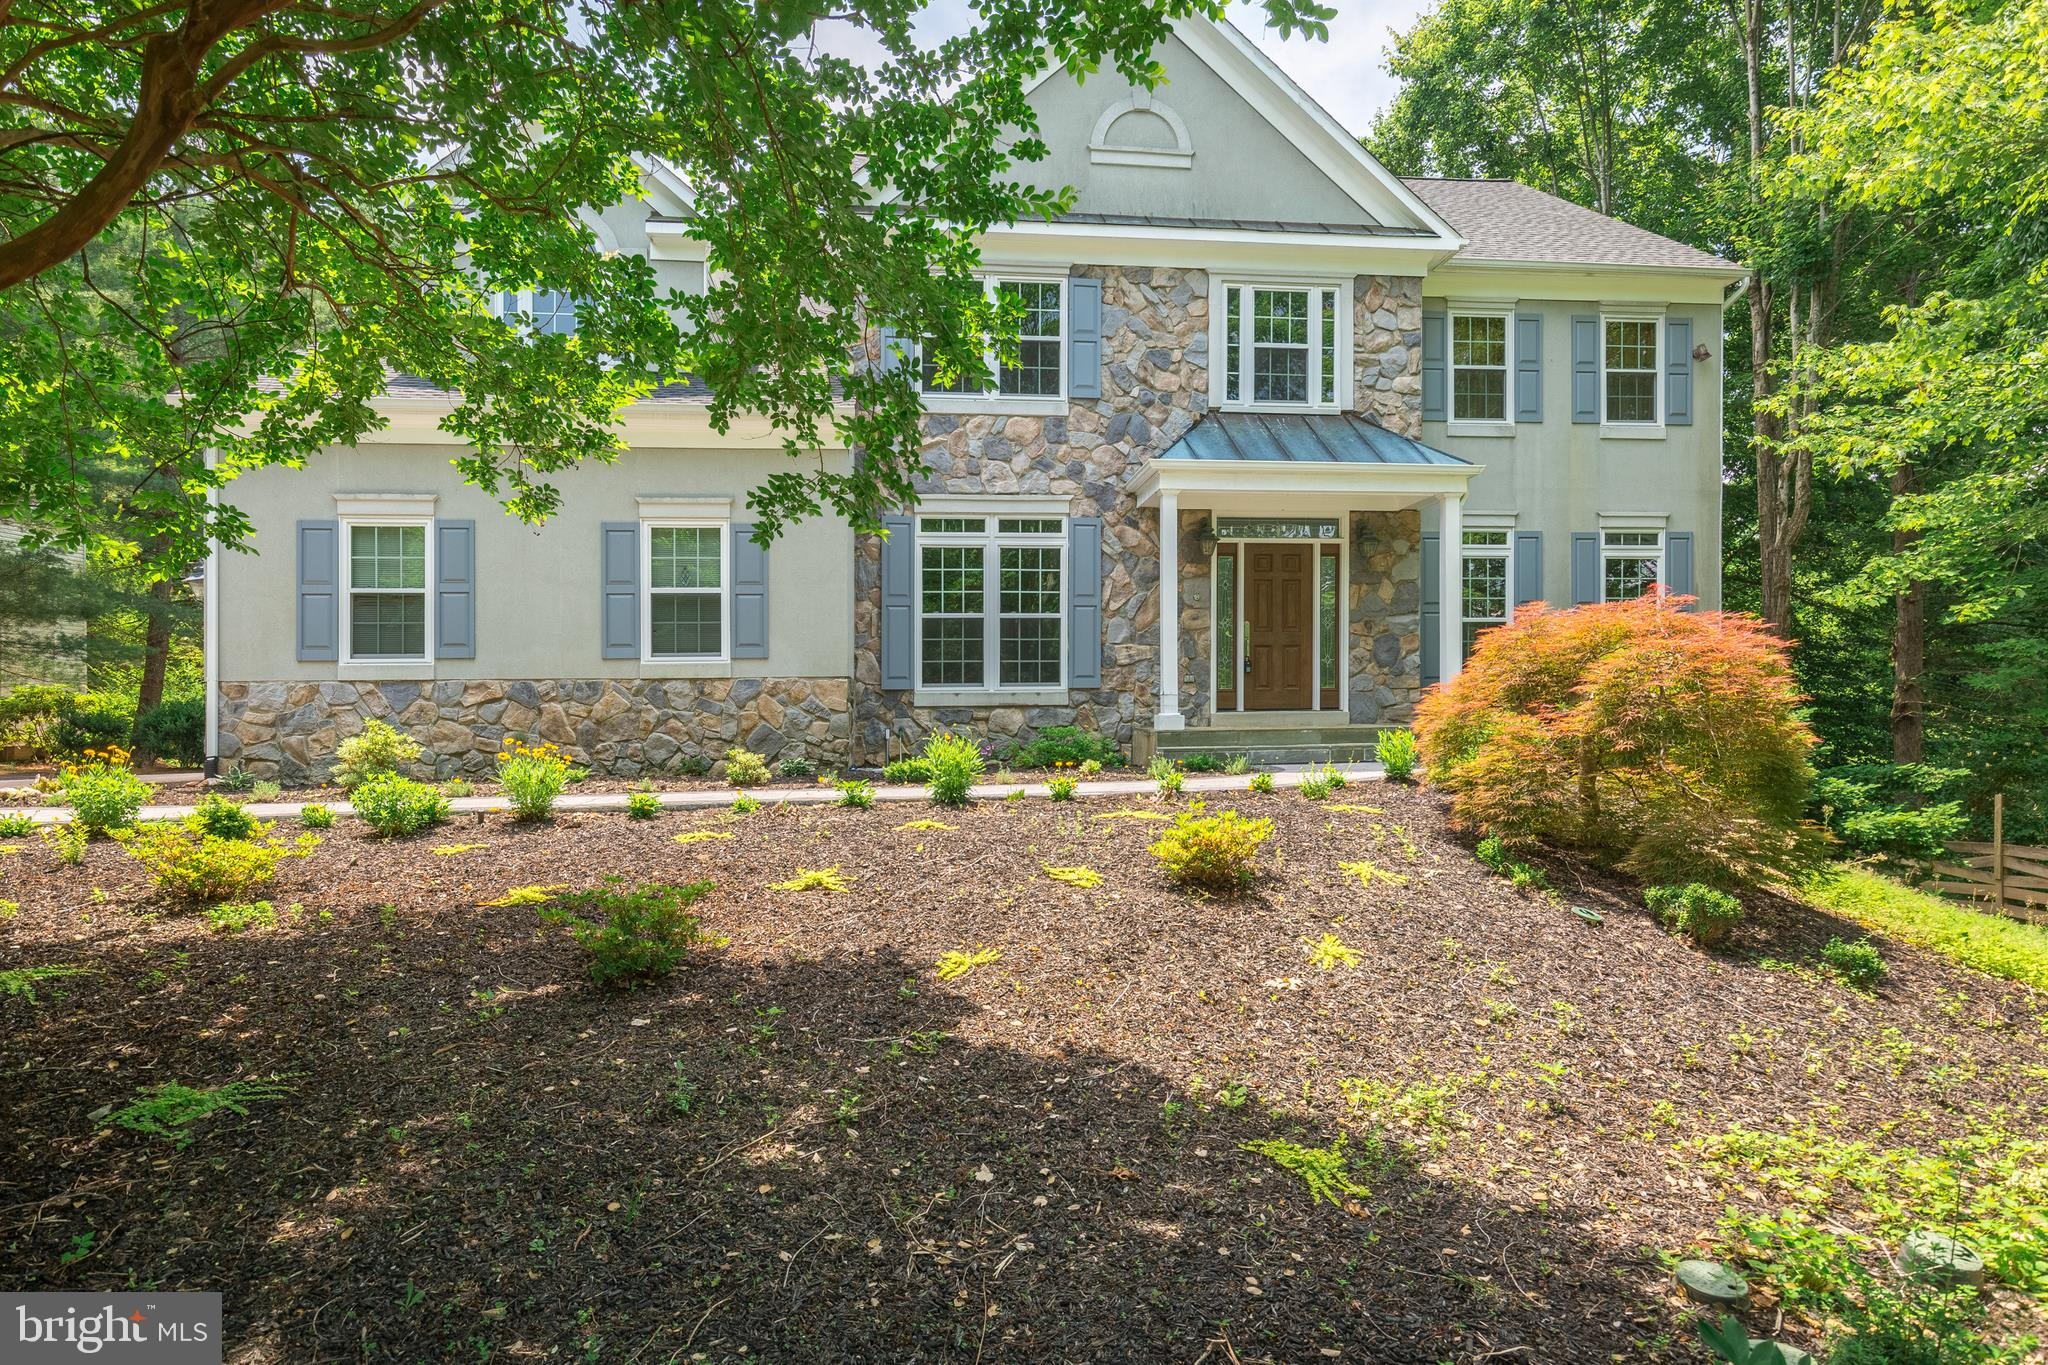 6641 DEEP HOLLOW LANE, MANASSAS, VA 20112